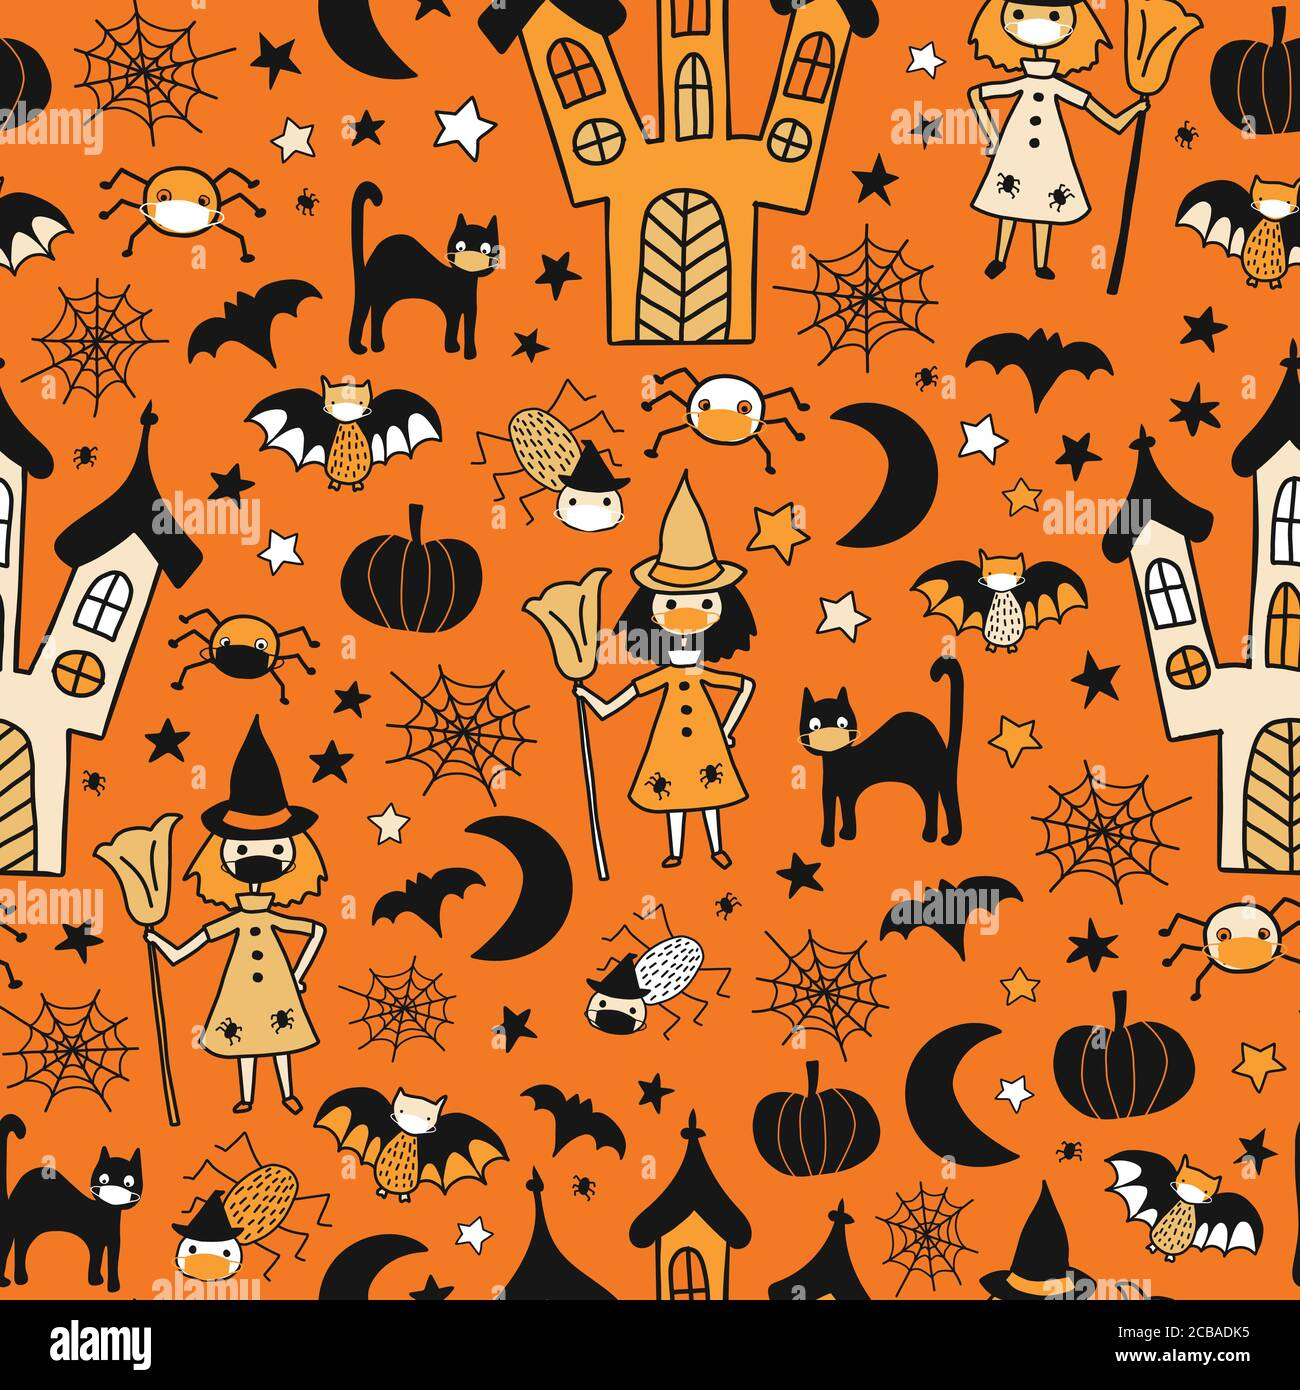 2020 Halloween Background Halloween 2020 Coronavirus kids vector pattern. Witch, cat